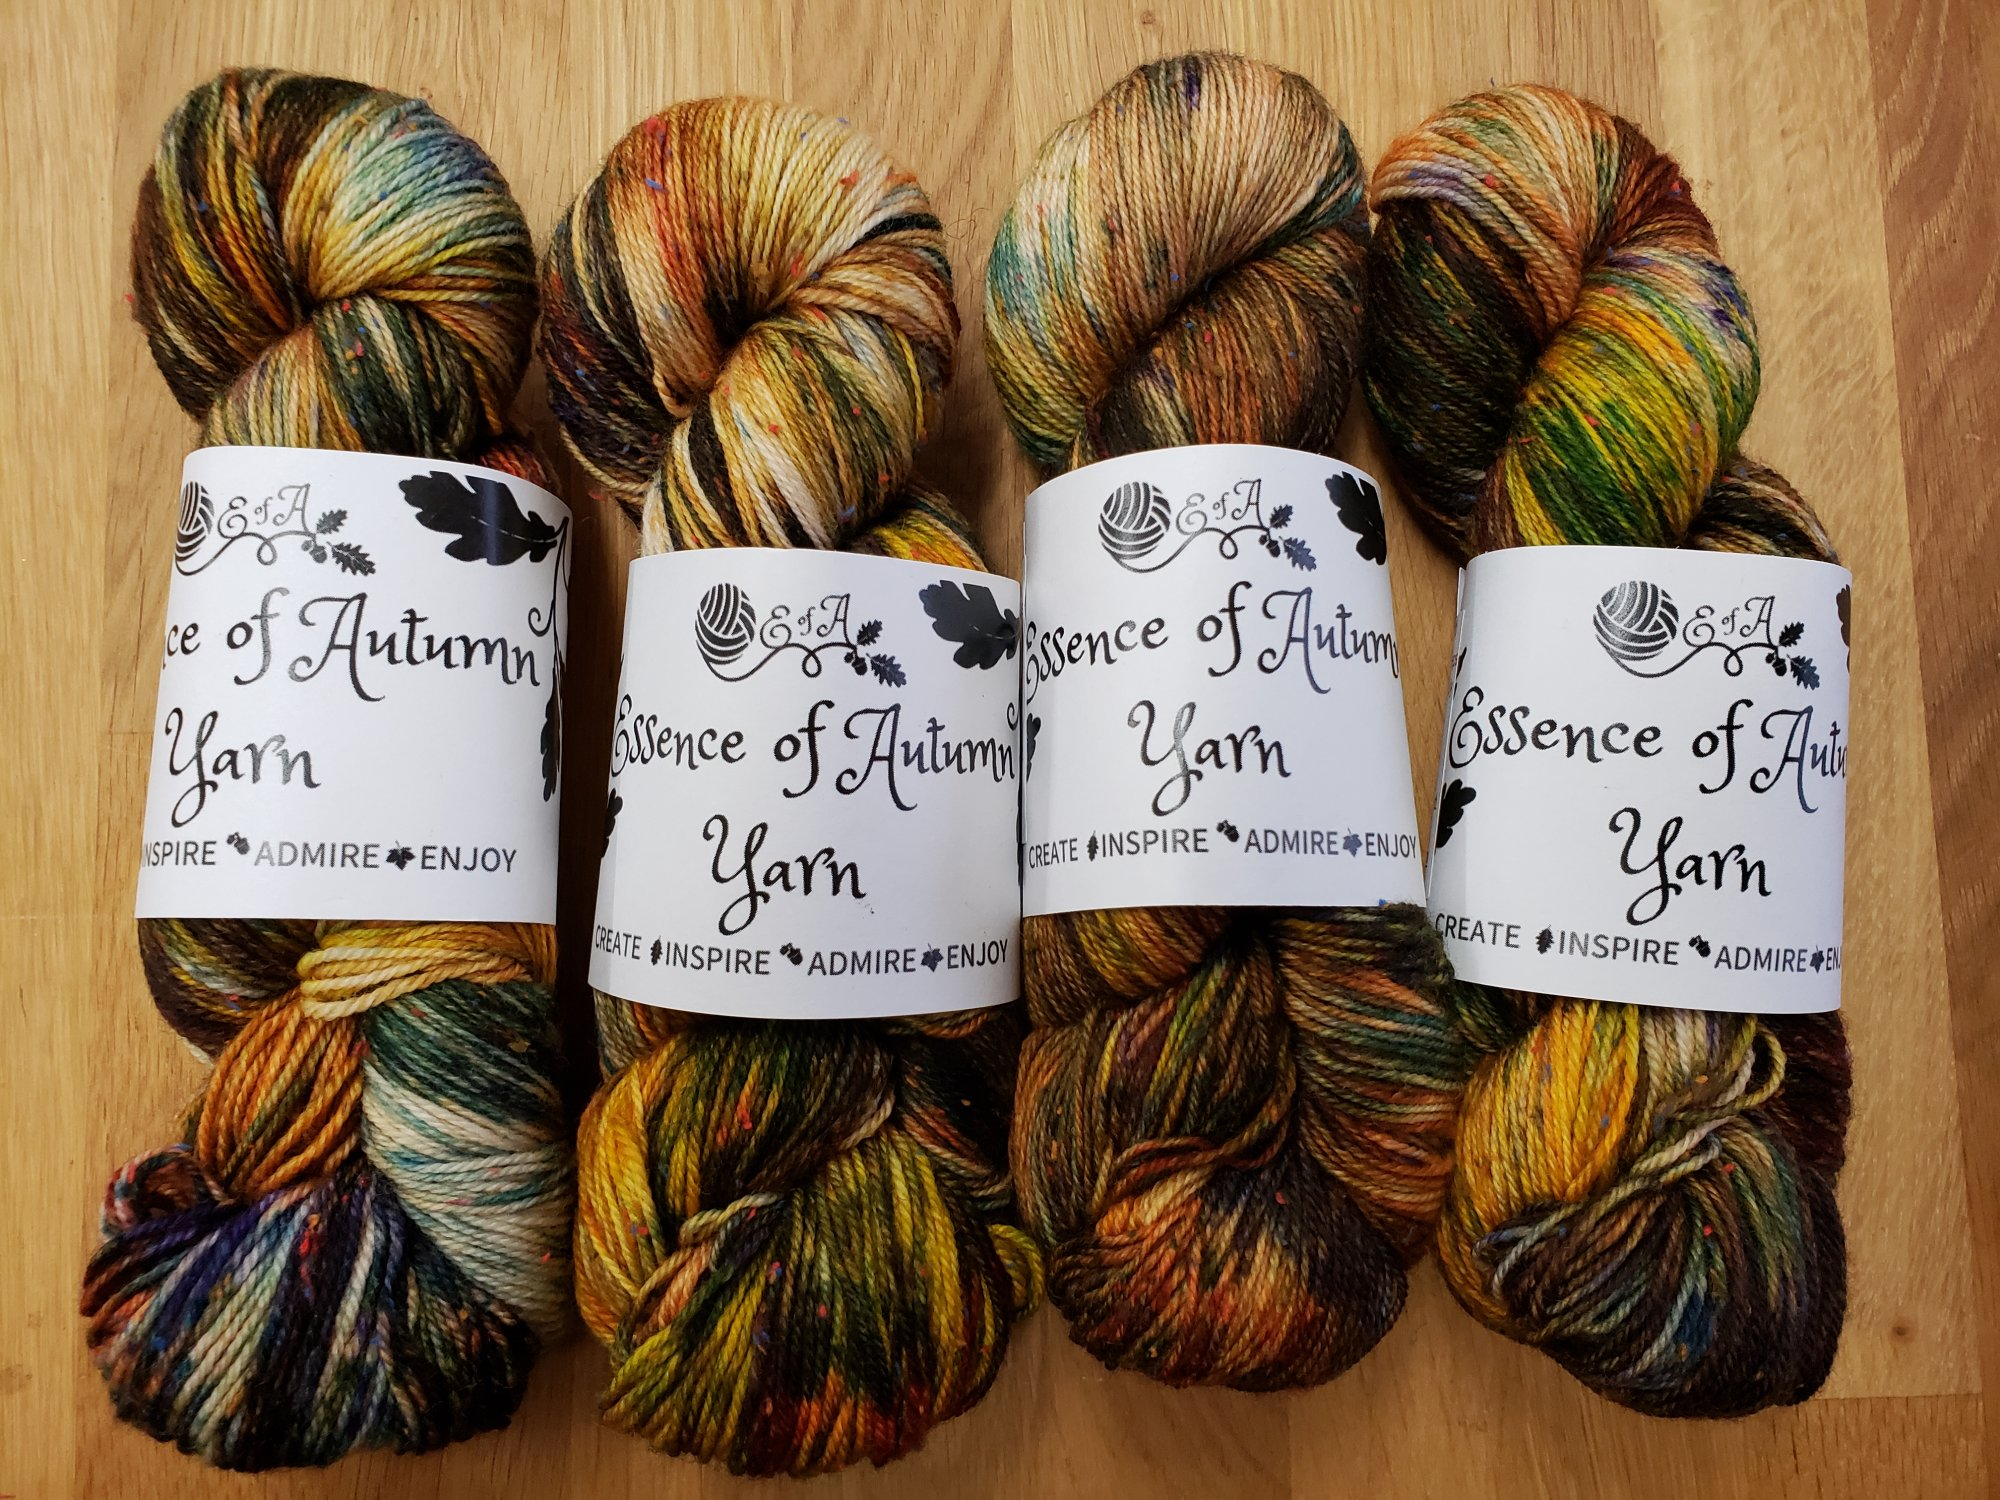 Highland Tweed Multi by Essence of Autumn - 80% Wool/20% Multi colour Neps